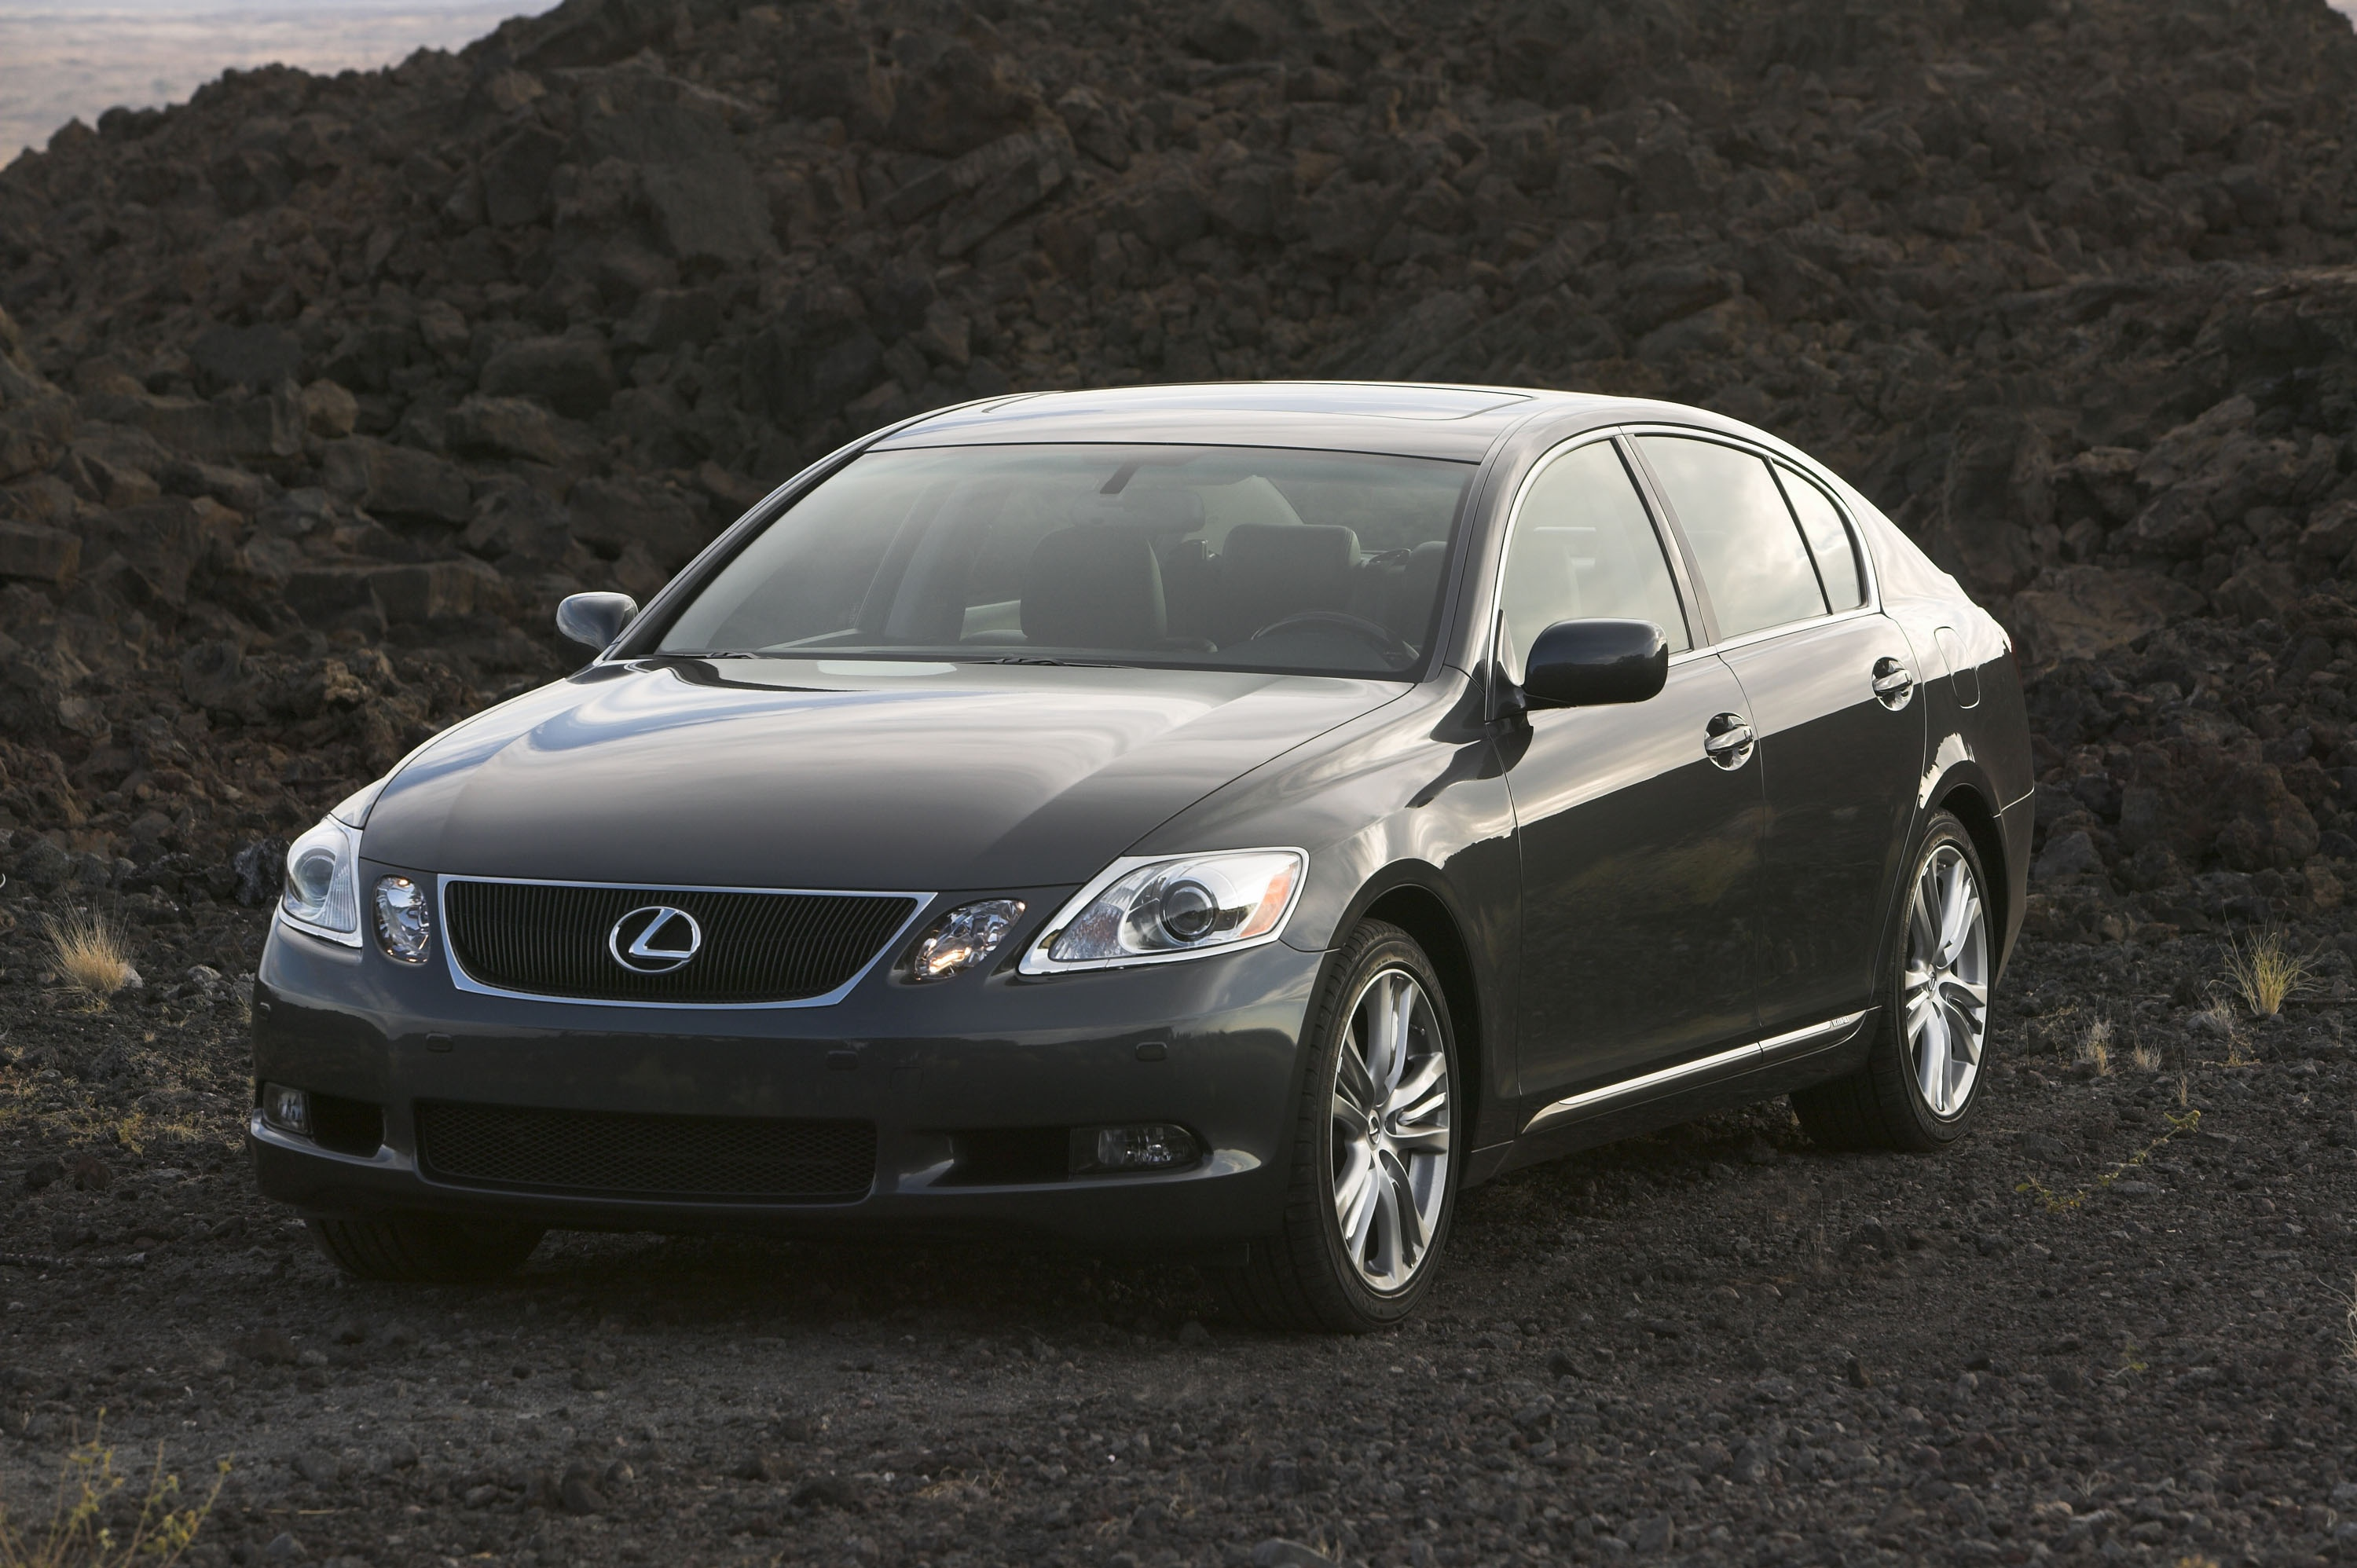 2007 lexus gs 450h top speed. Black Bedroom Furniture Sets. Home Design Ideas